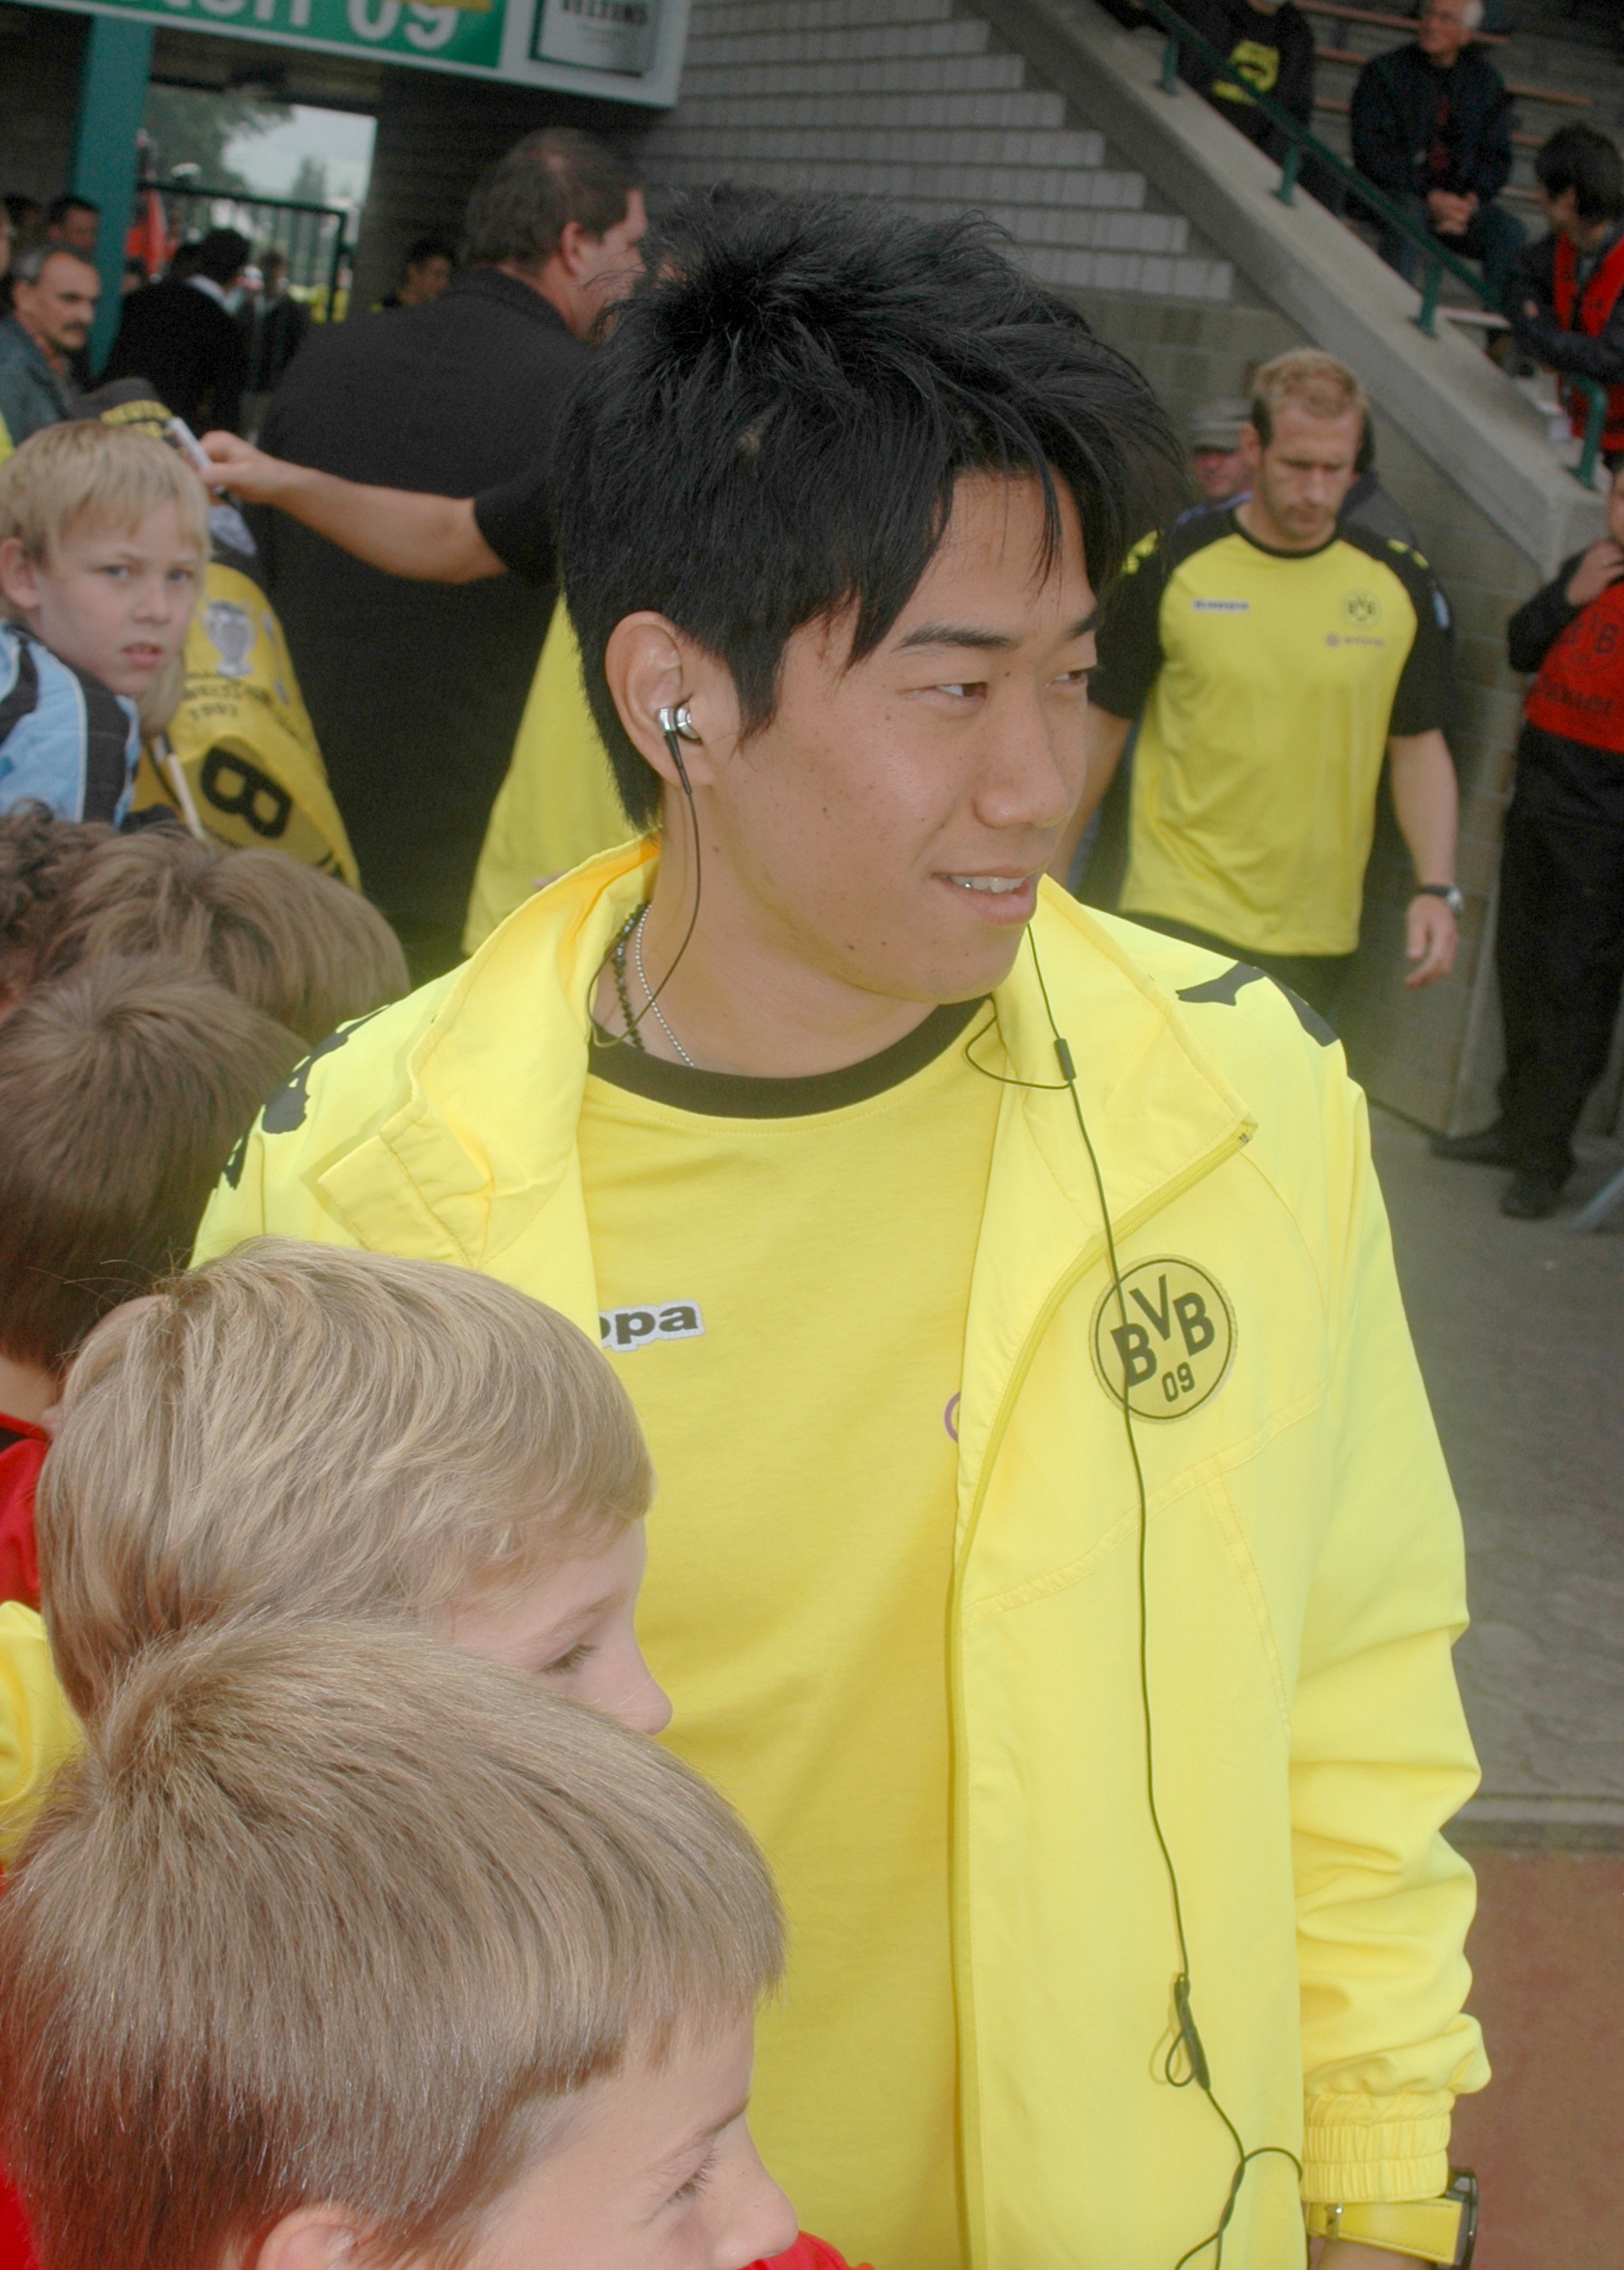 http://upload.wikimedia.org/wikipedia/commons/a/aa/Kagawa_Shinji,_Japanese_footballer_3.jpg